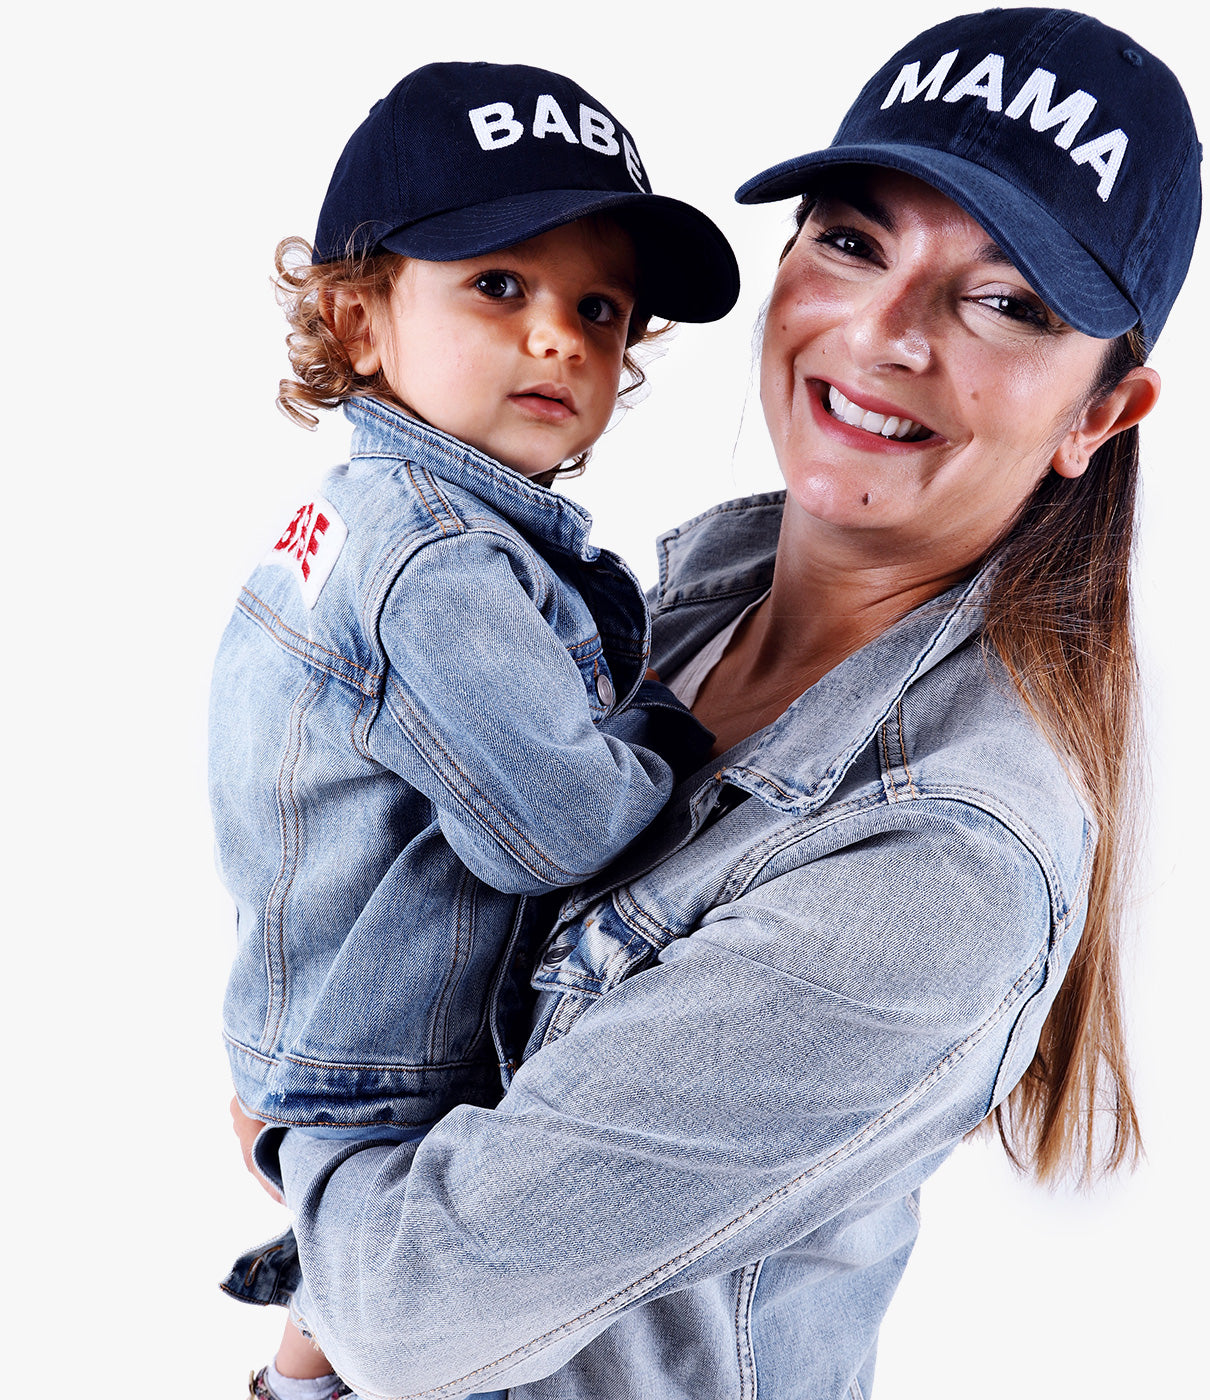 Match Even MoreCheck out the MAMA and BABE denim jackets to complete the outfit.